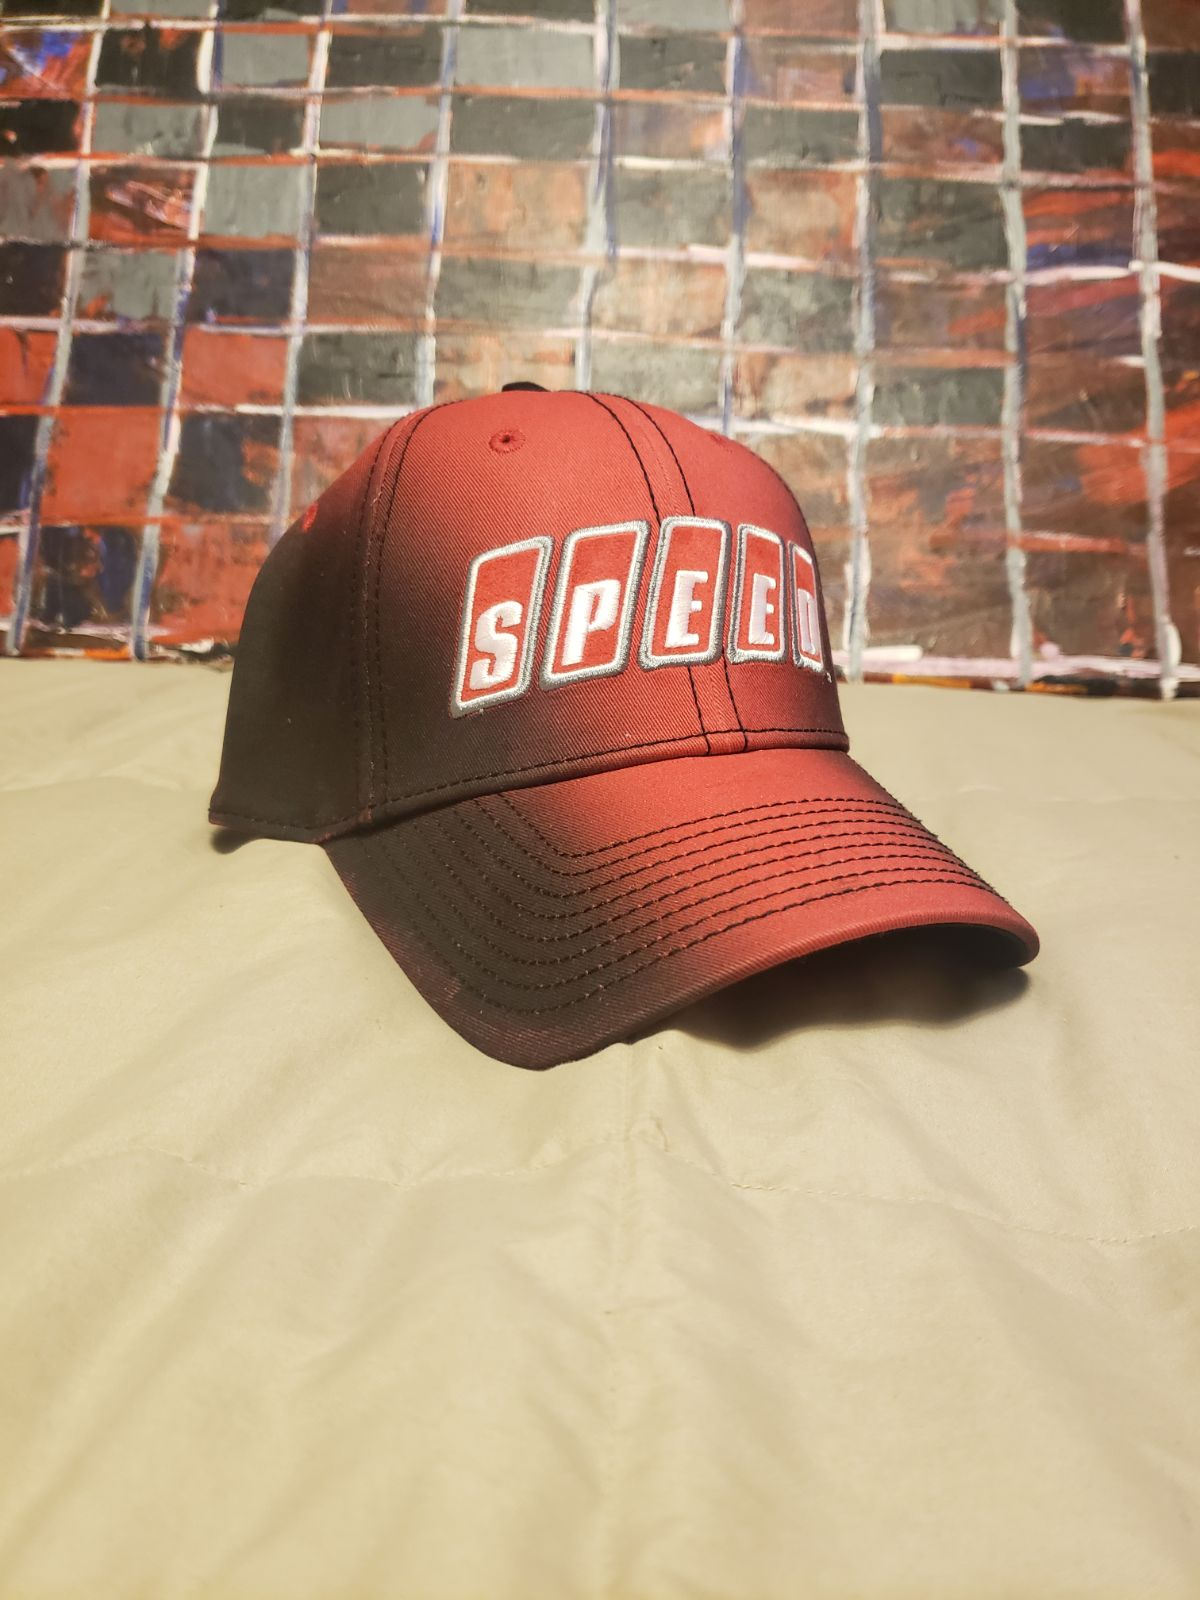 The Chase Authentics Hats